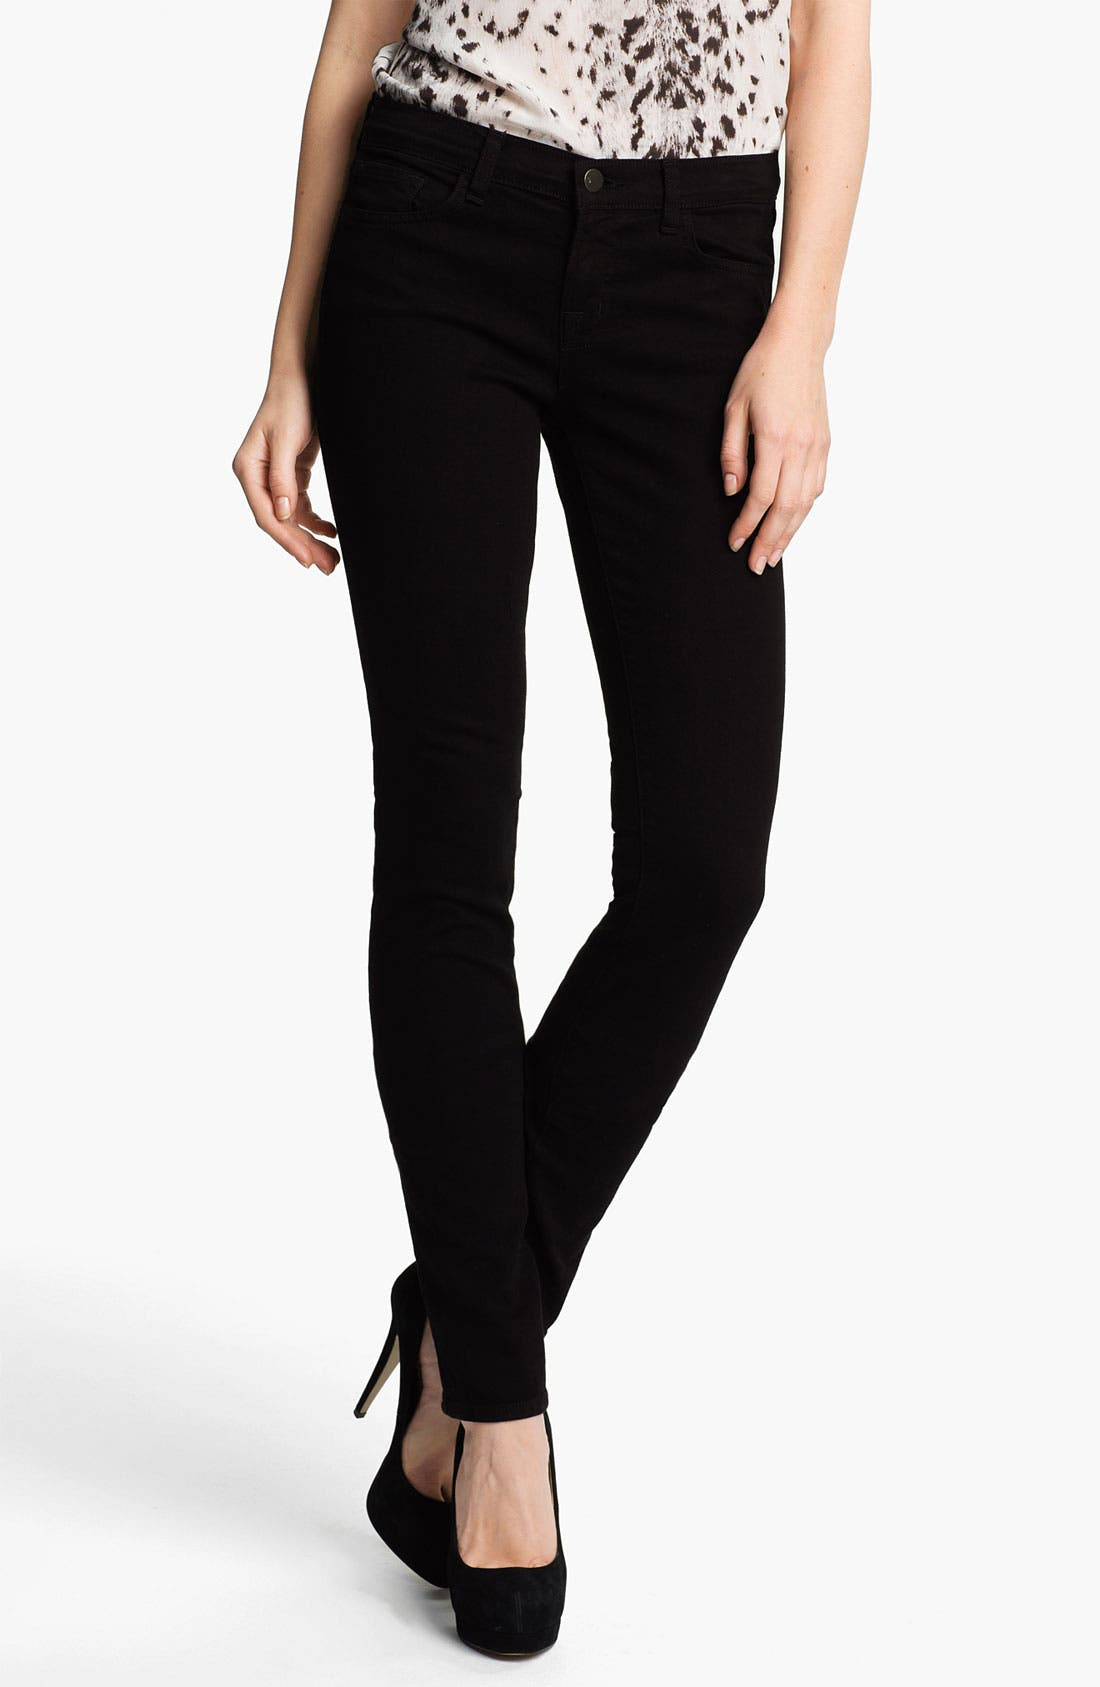 Main Image - J Brand 'Pencil Leg' Stretch Jeans (Shadow)